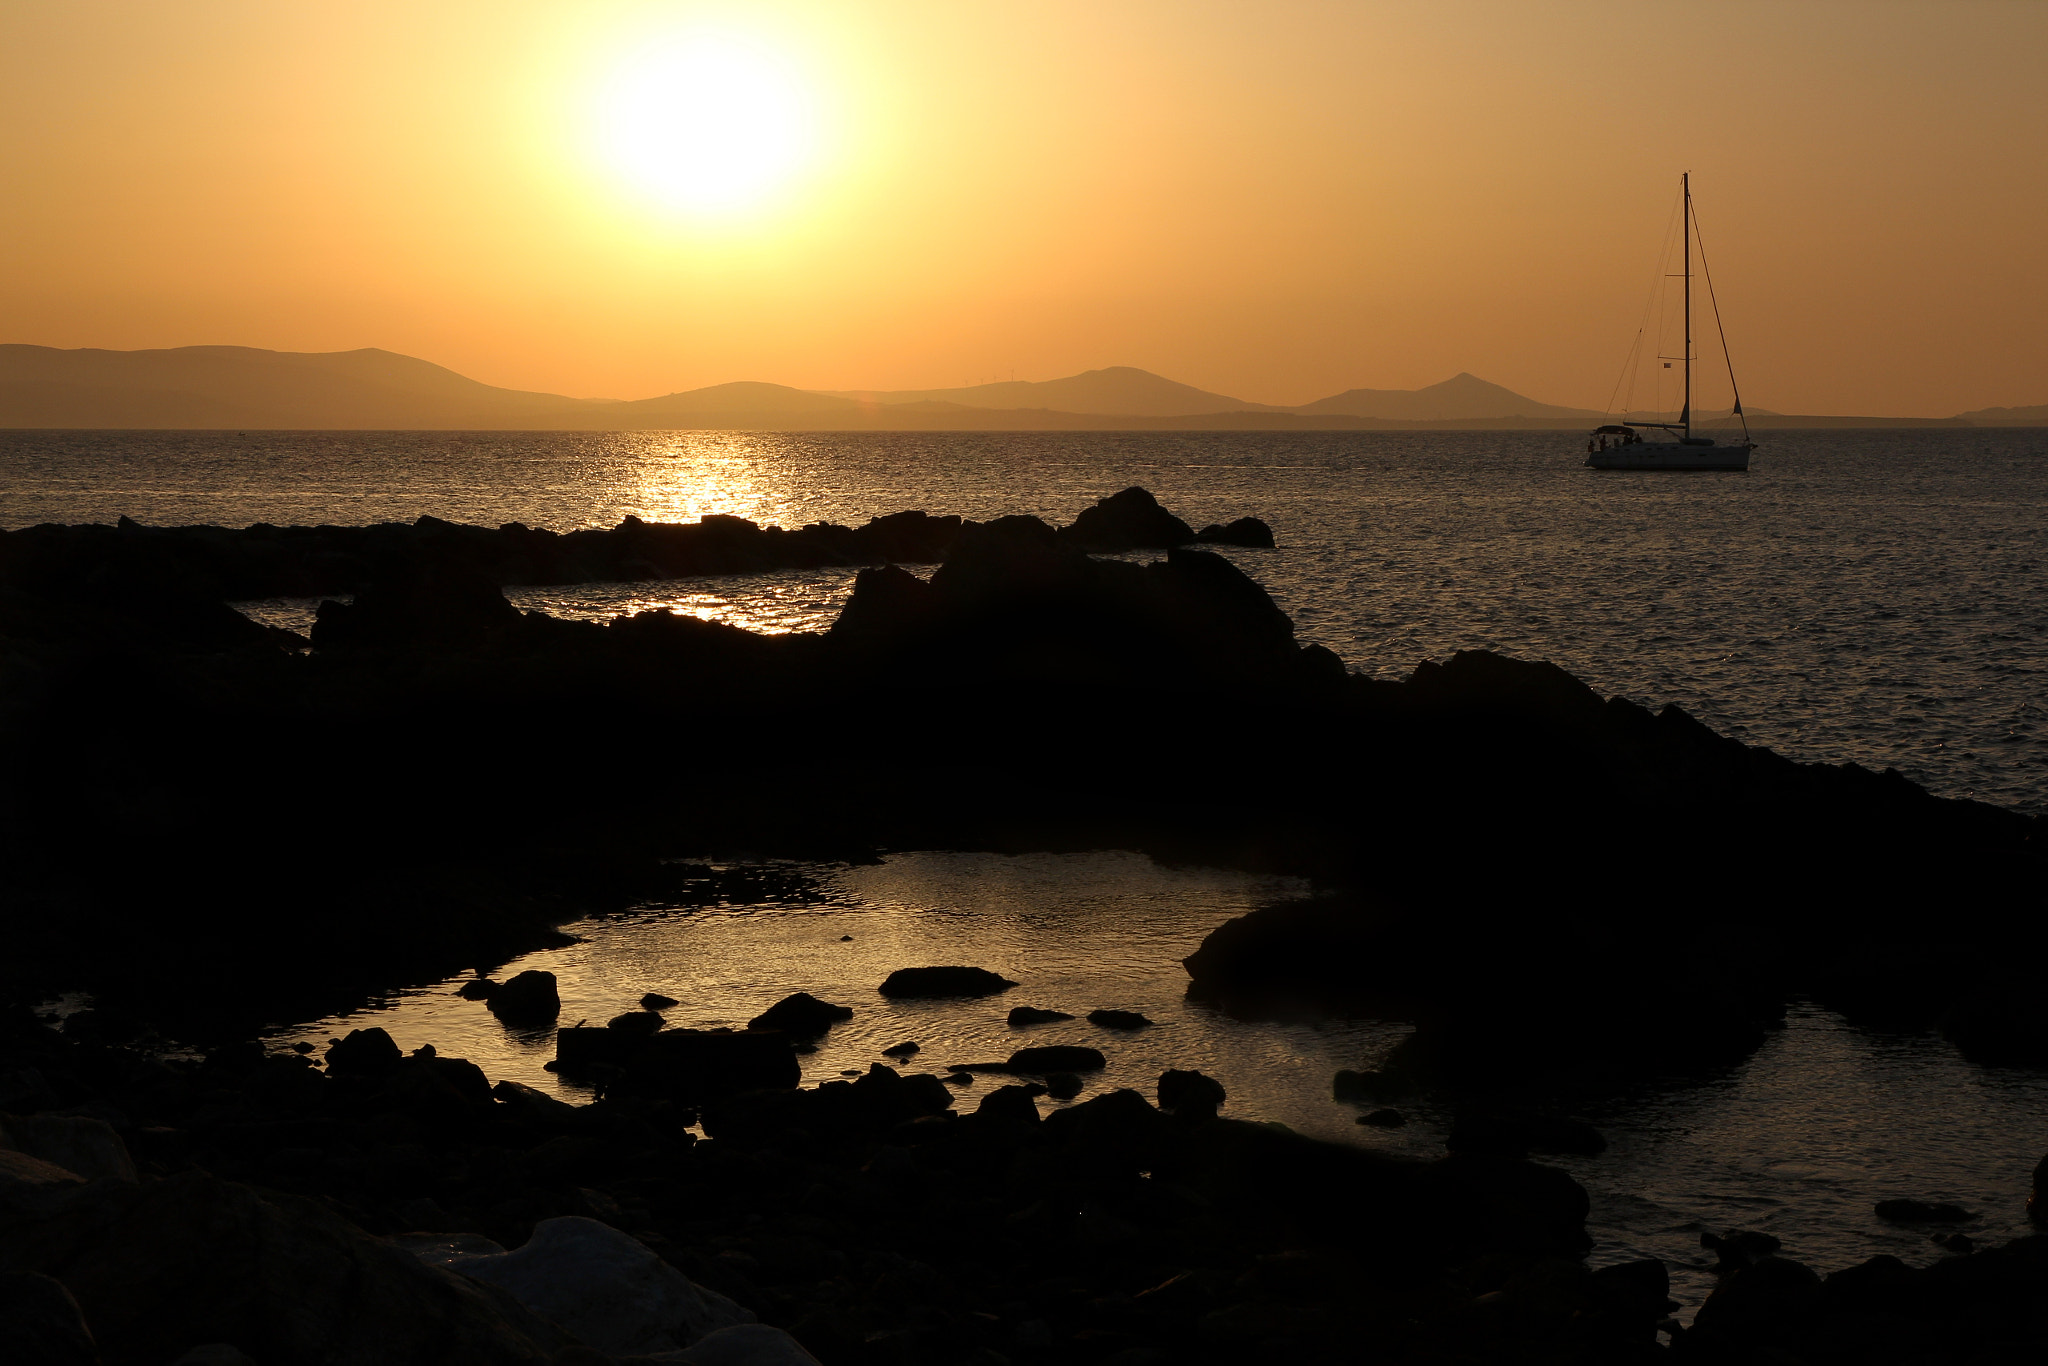 Photograph Naxos island sunset by Victor castillo on 500px